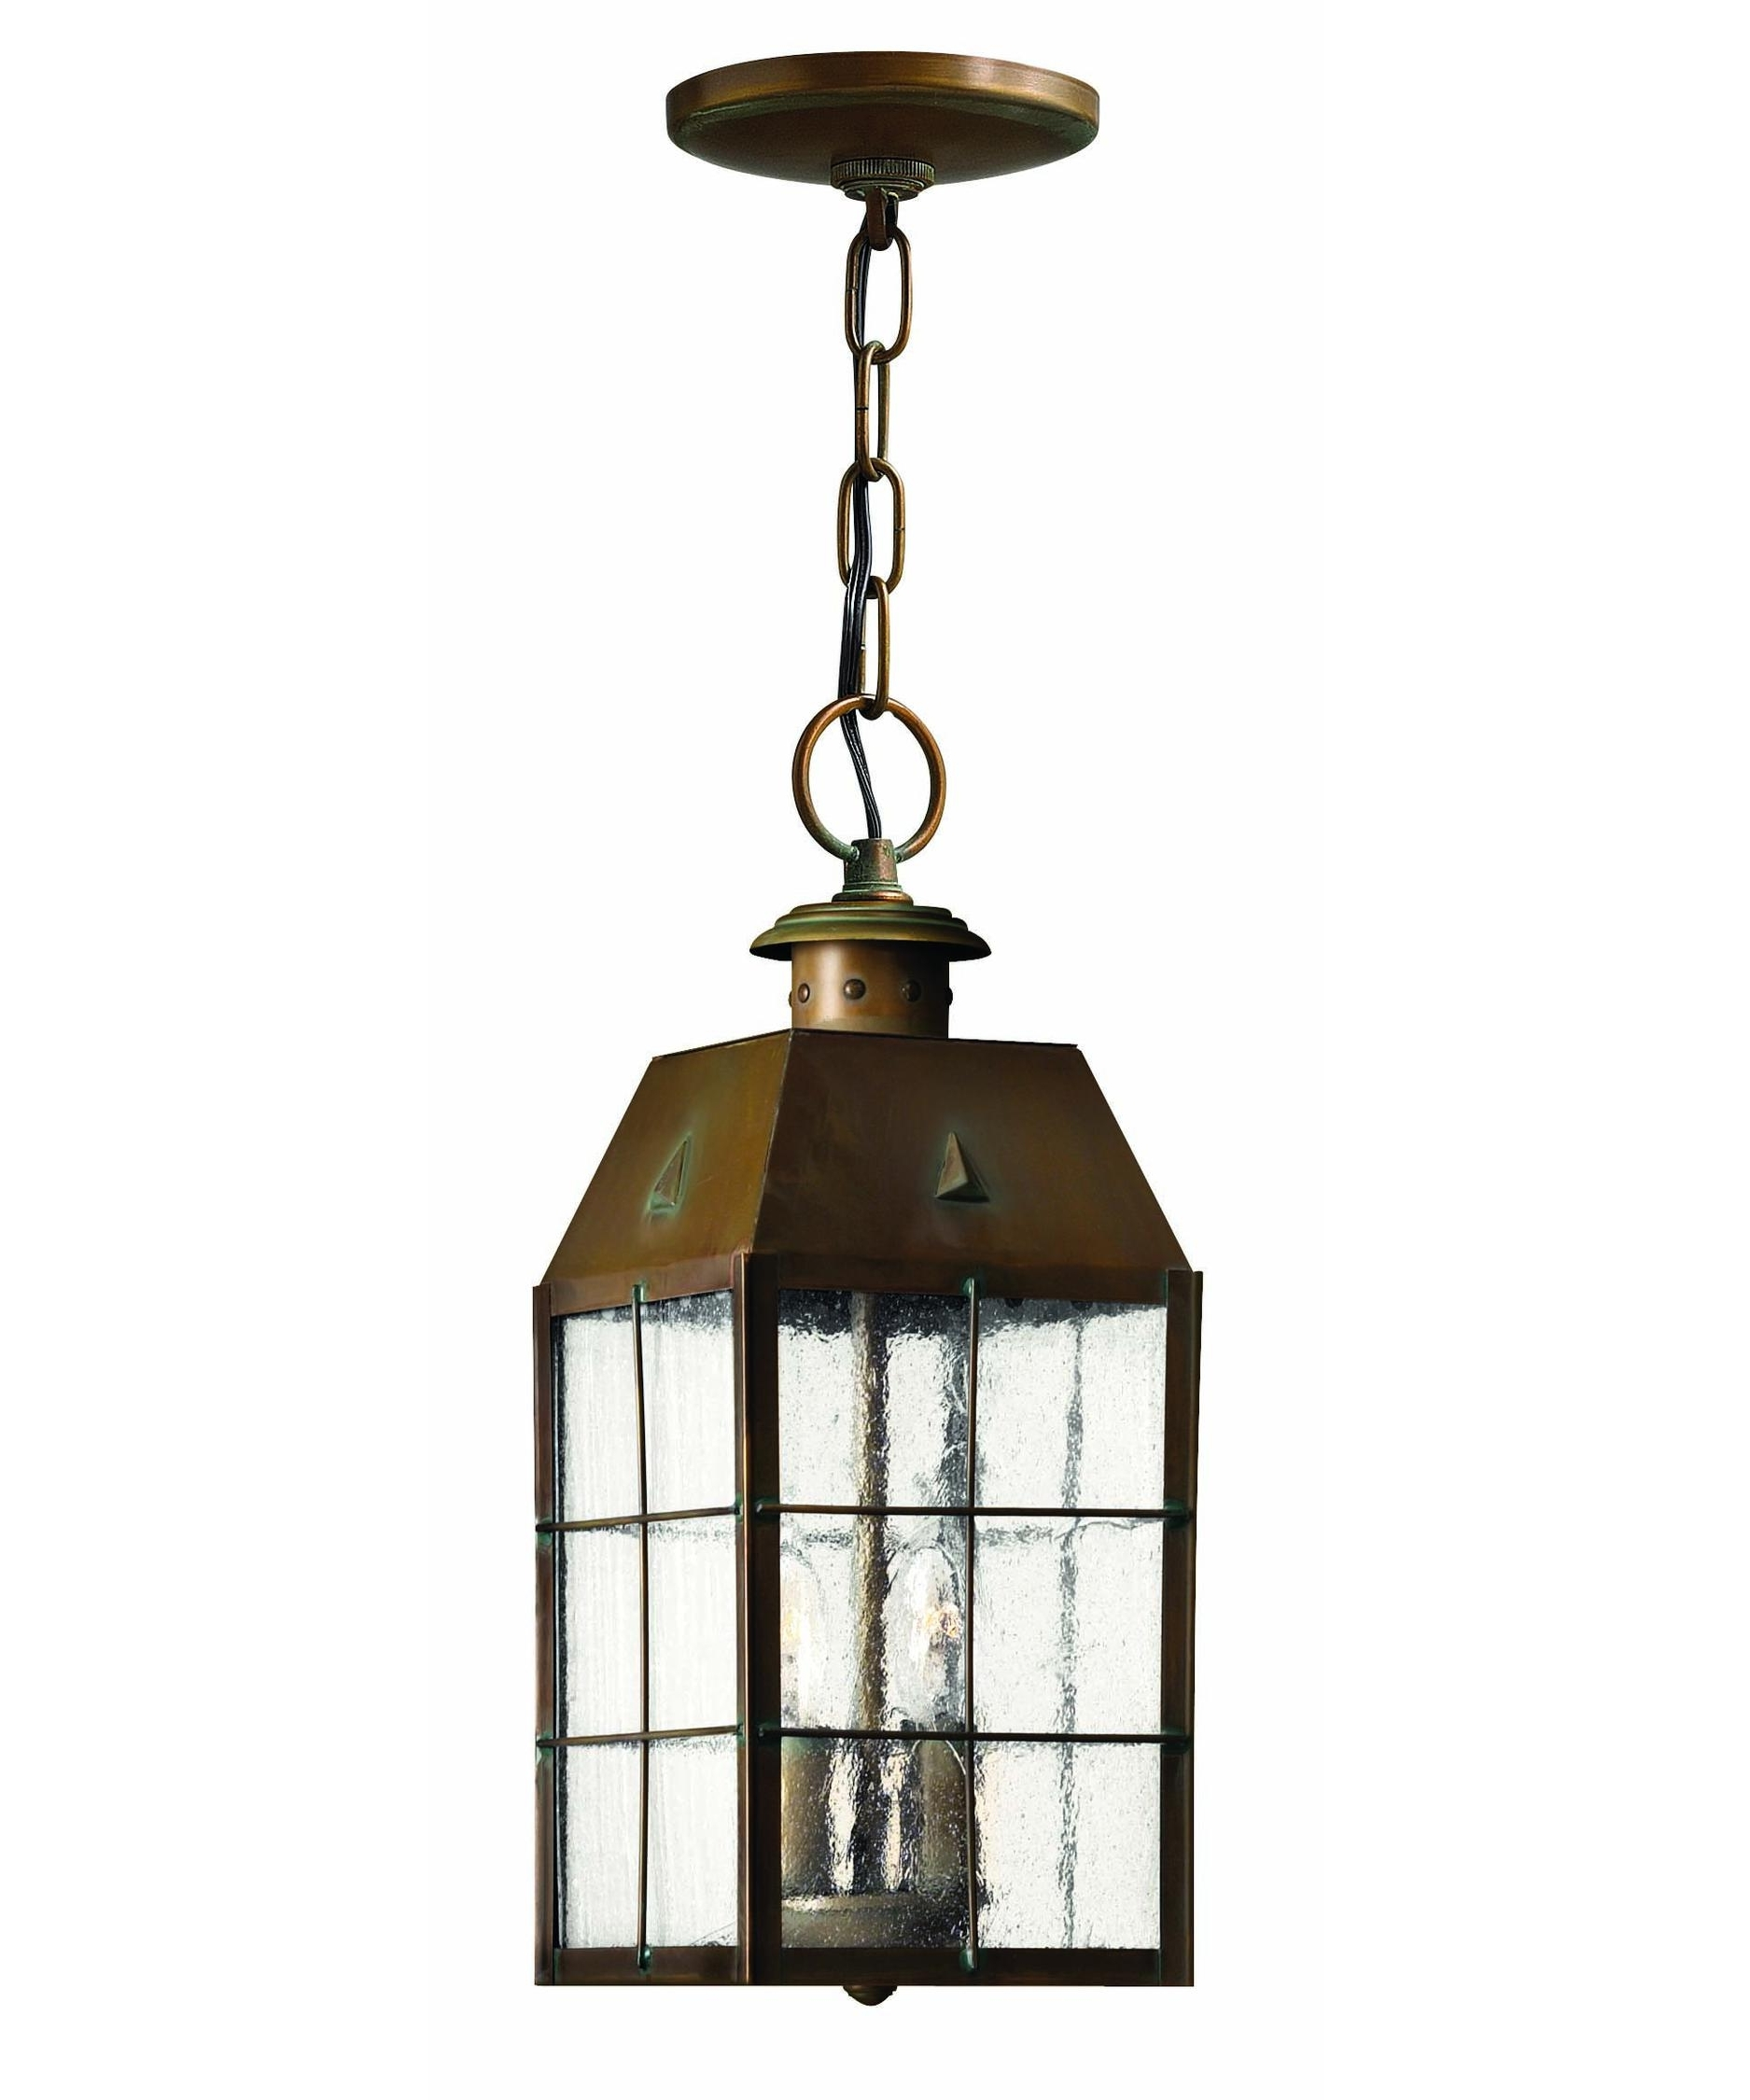 Hinkley Lighting 2372 Nantucket 6 Inch Wide 2 Light Outdoor Hanging Pertaining To Current Outdoor Ceiling Mount Porch Lights (Gallery 12 of 20)